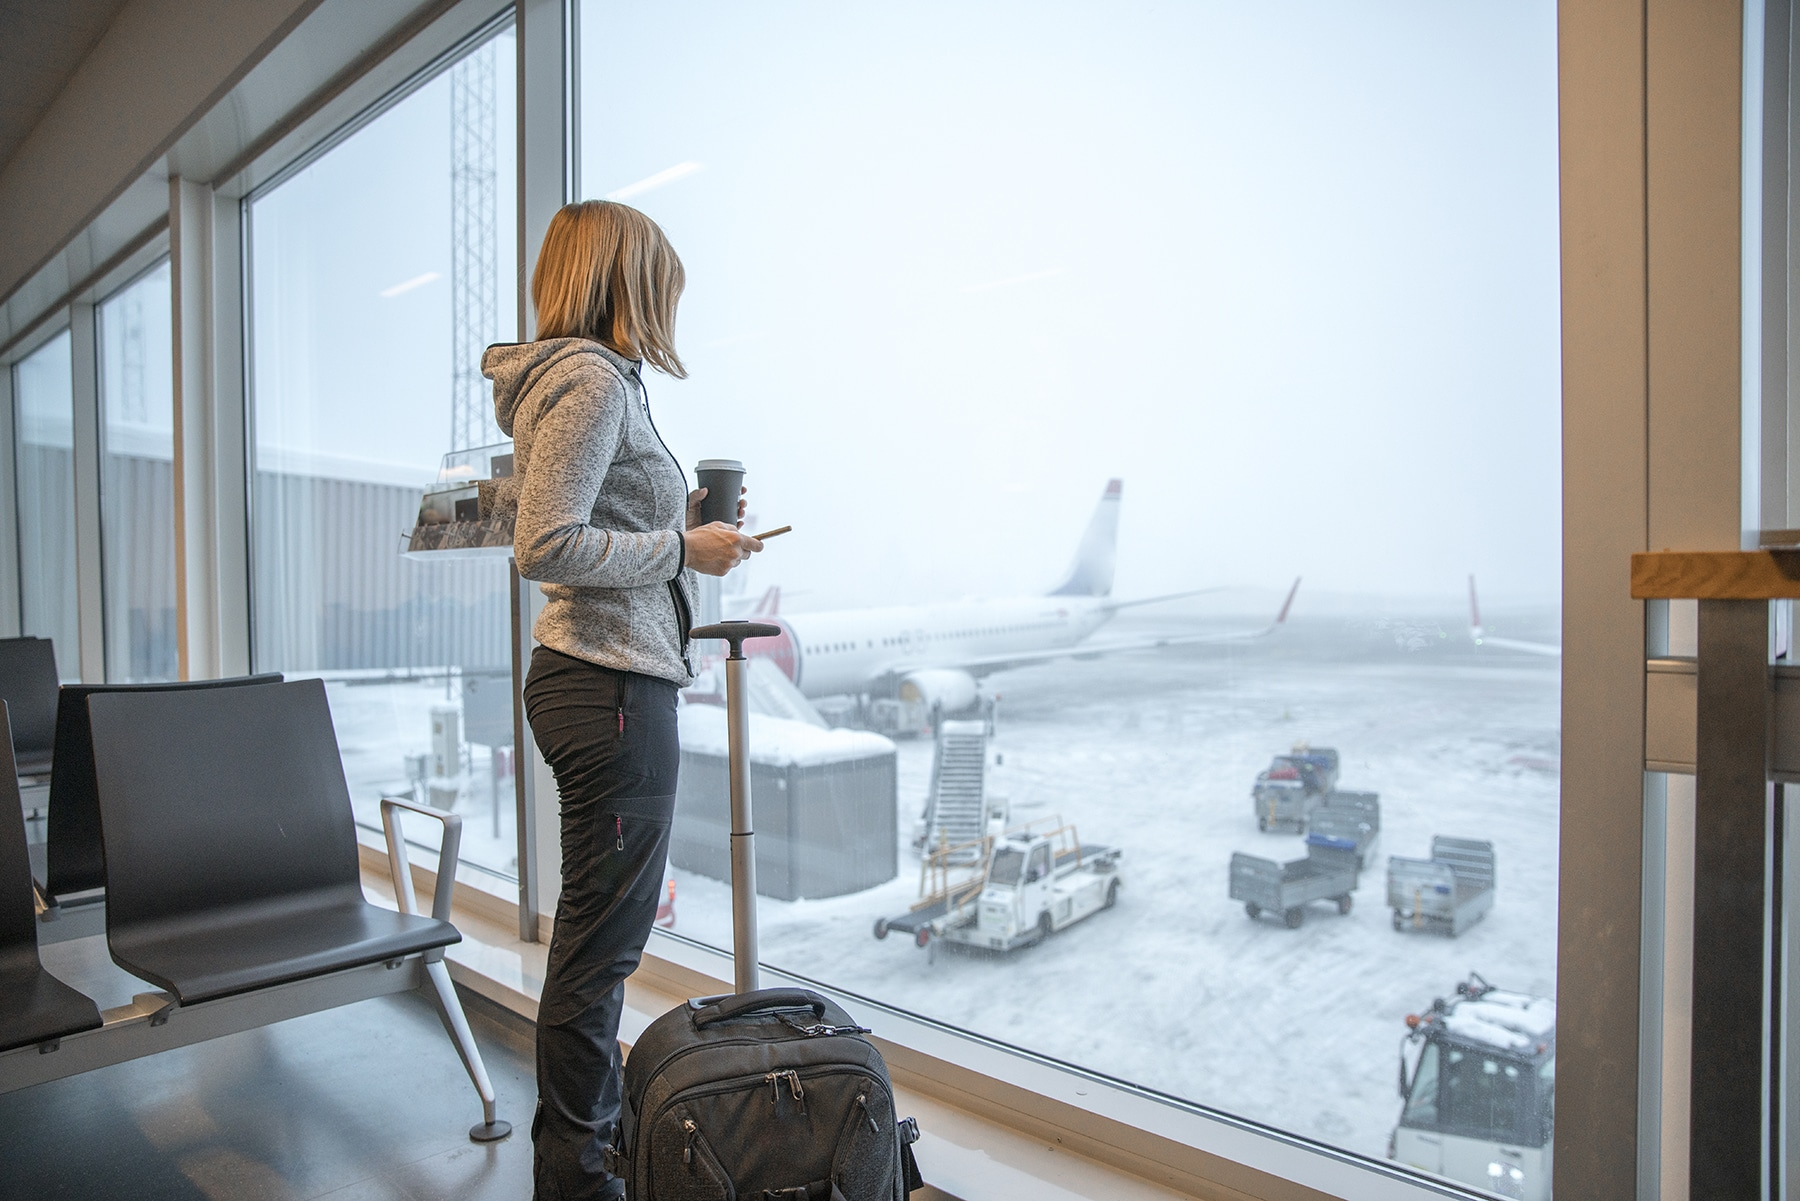 Is Your Airport Cleared for Winter?